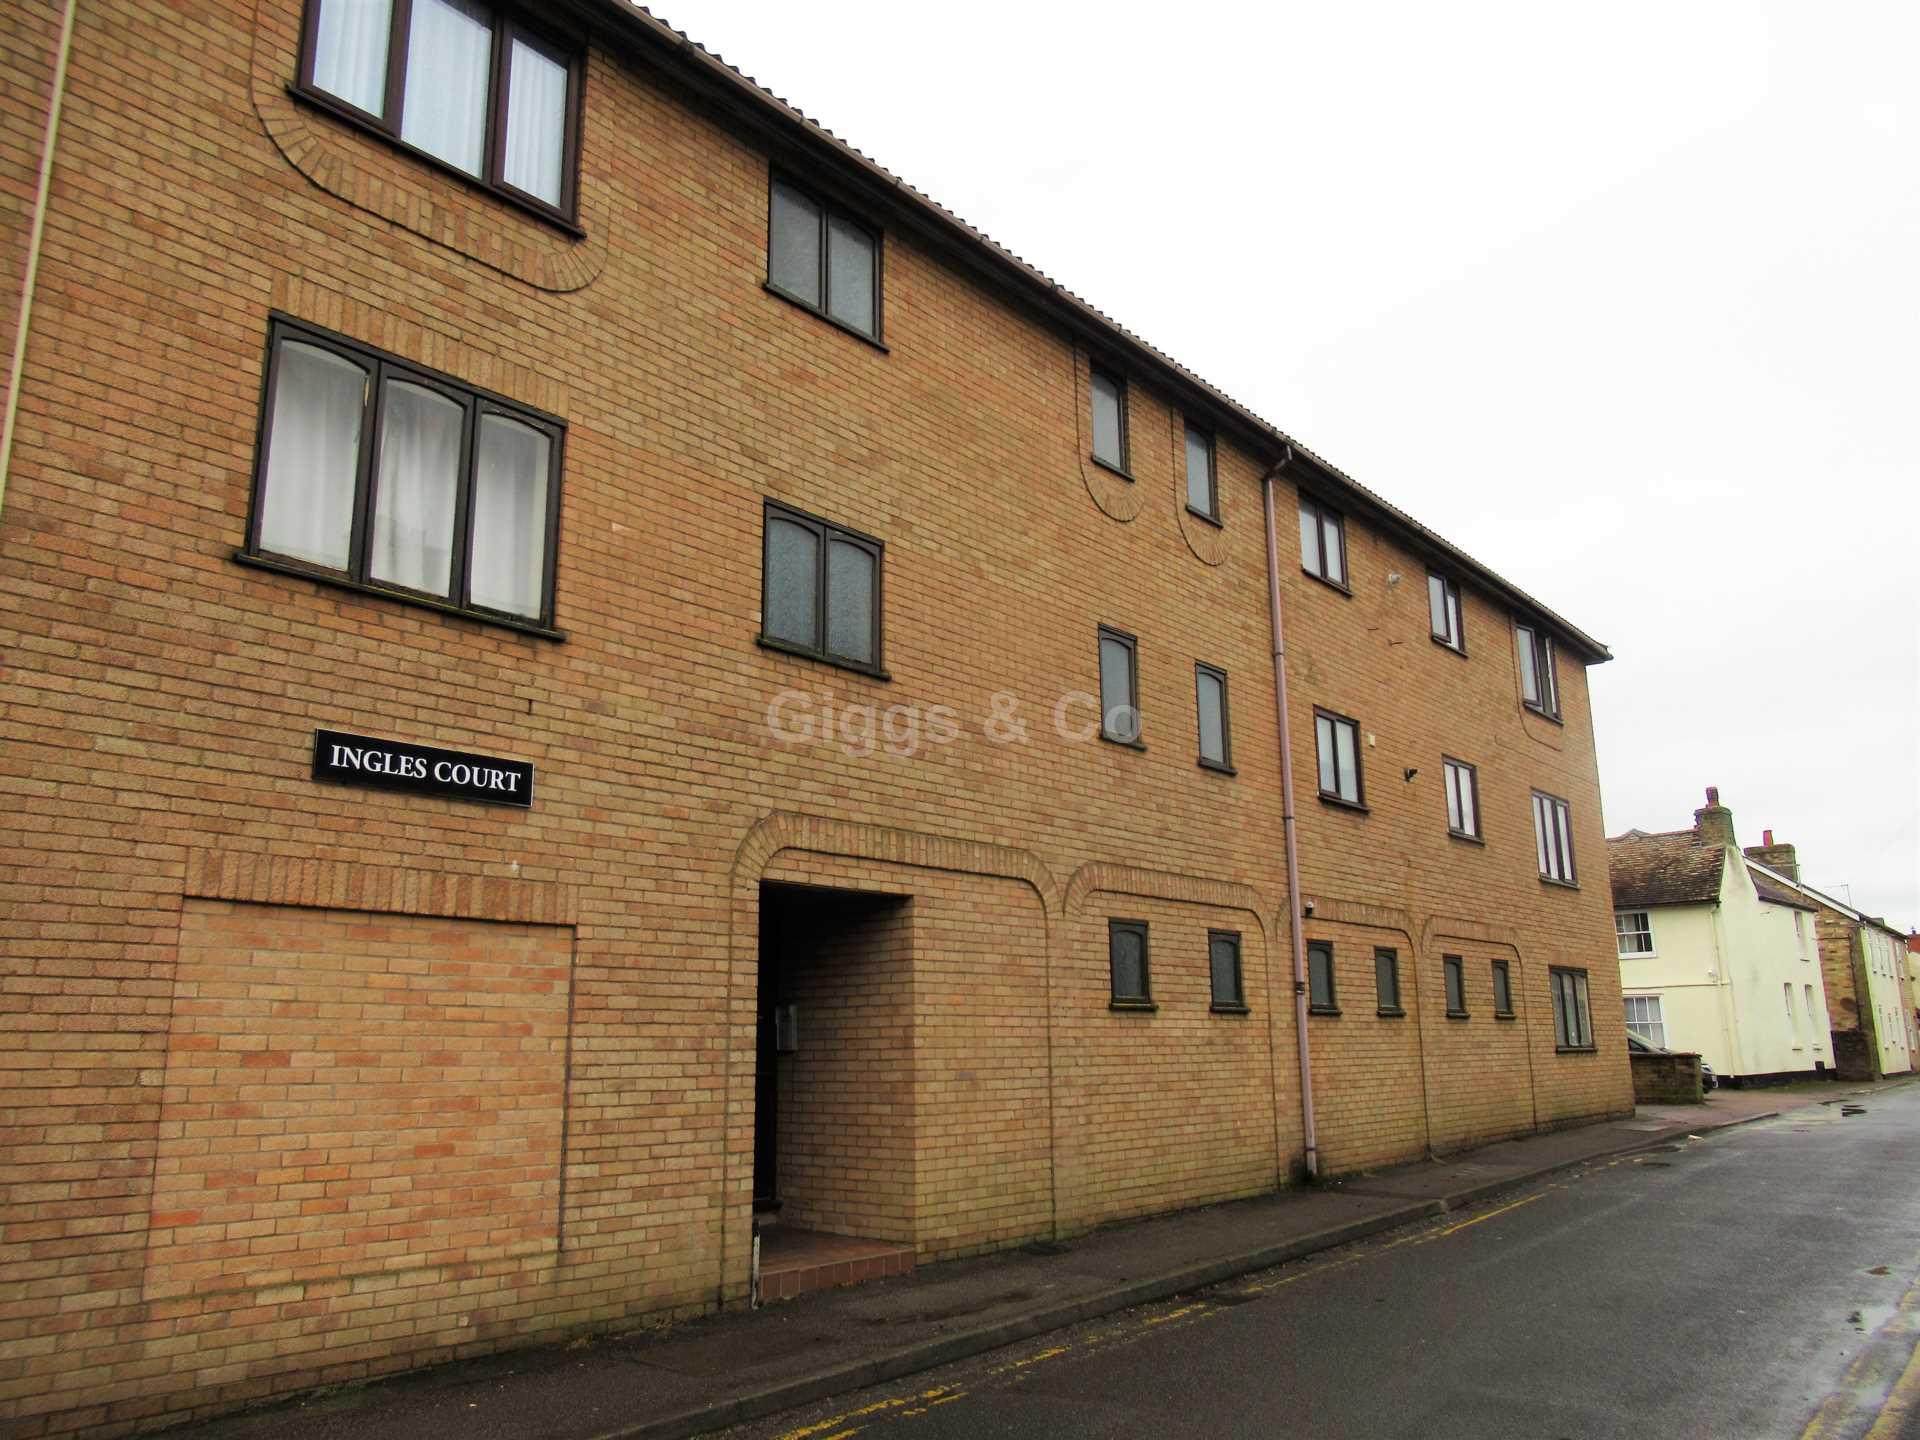 1 bed studio flat to rent in Ingles court,Russell Street, St Neots, PE19